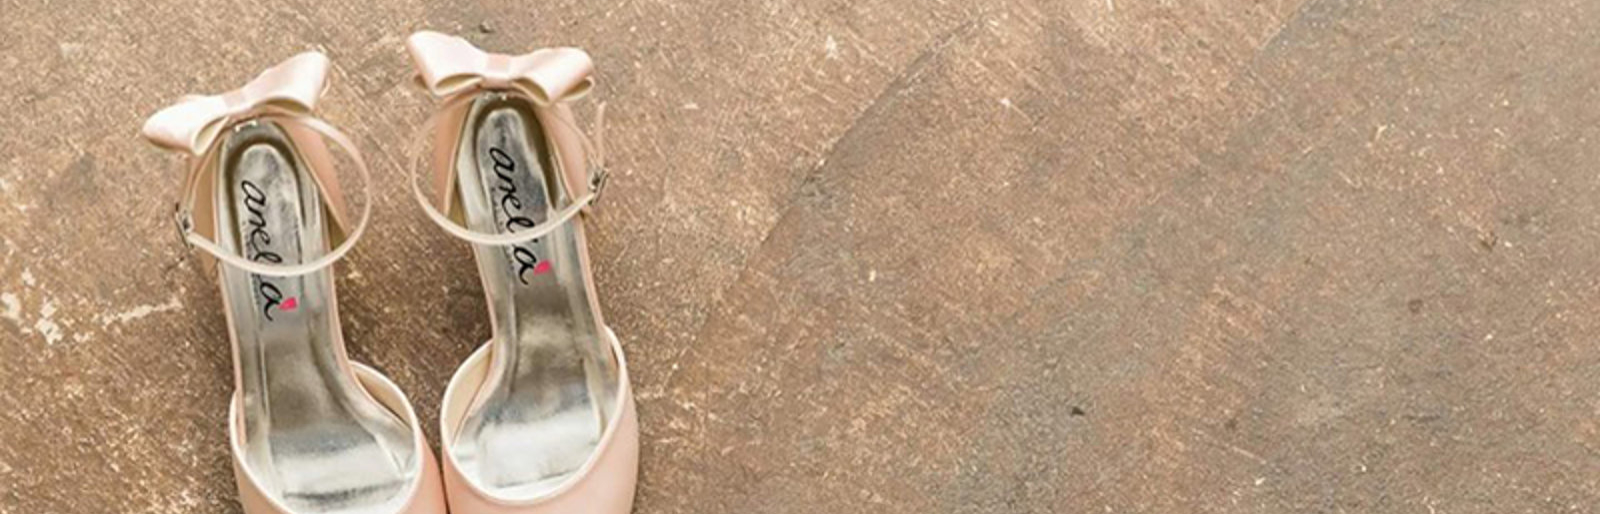 Win Your Wedding Shoes With Anella Shoes!